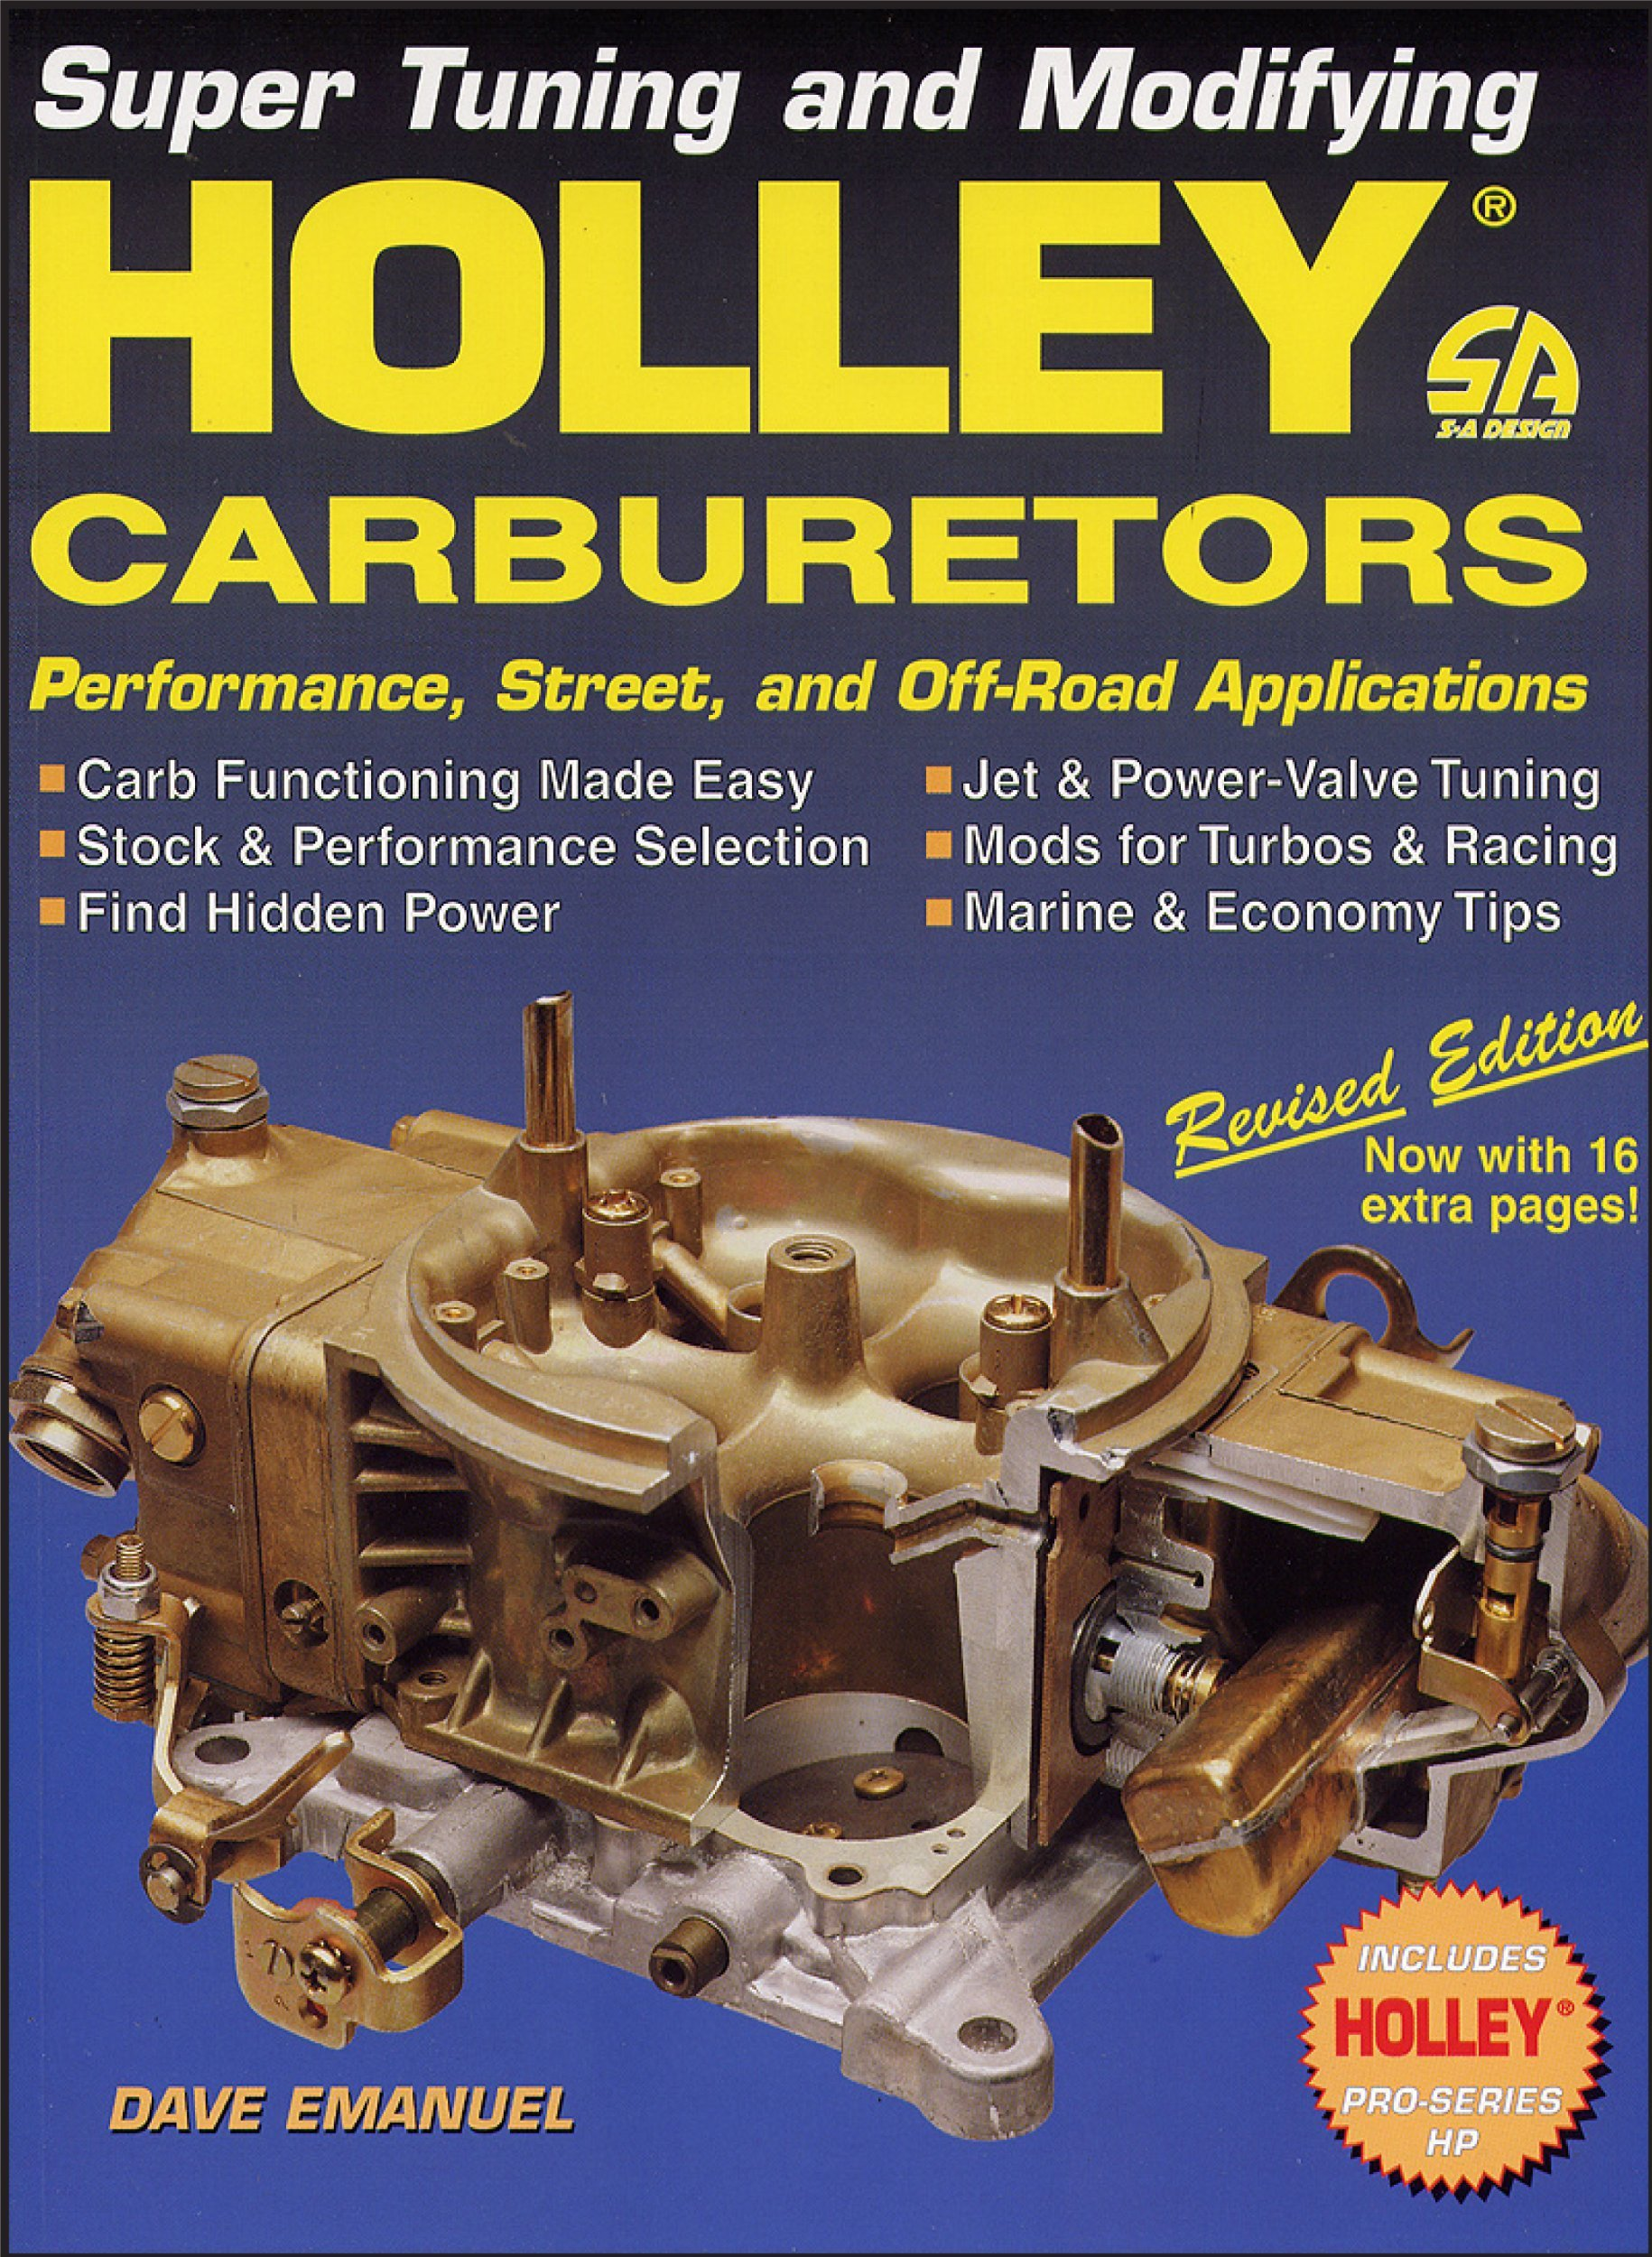 Holley carburetors dave emanuel 9781884089282 amazon books fandeluxe